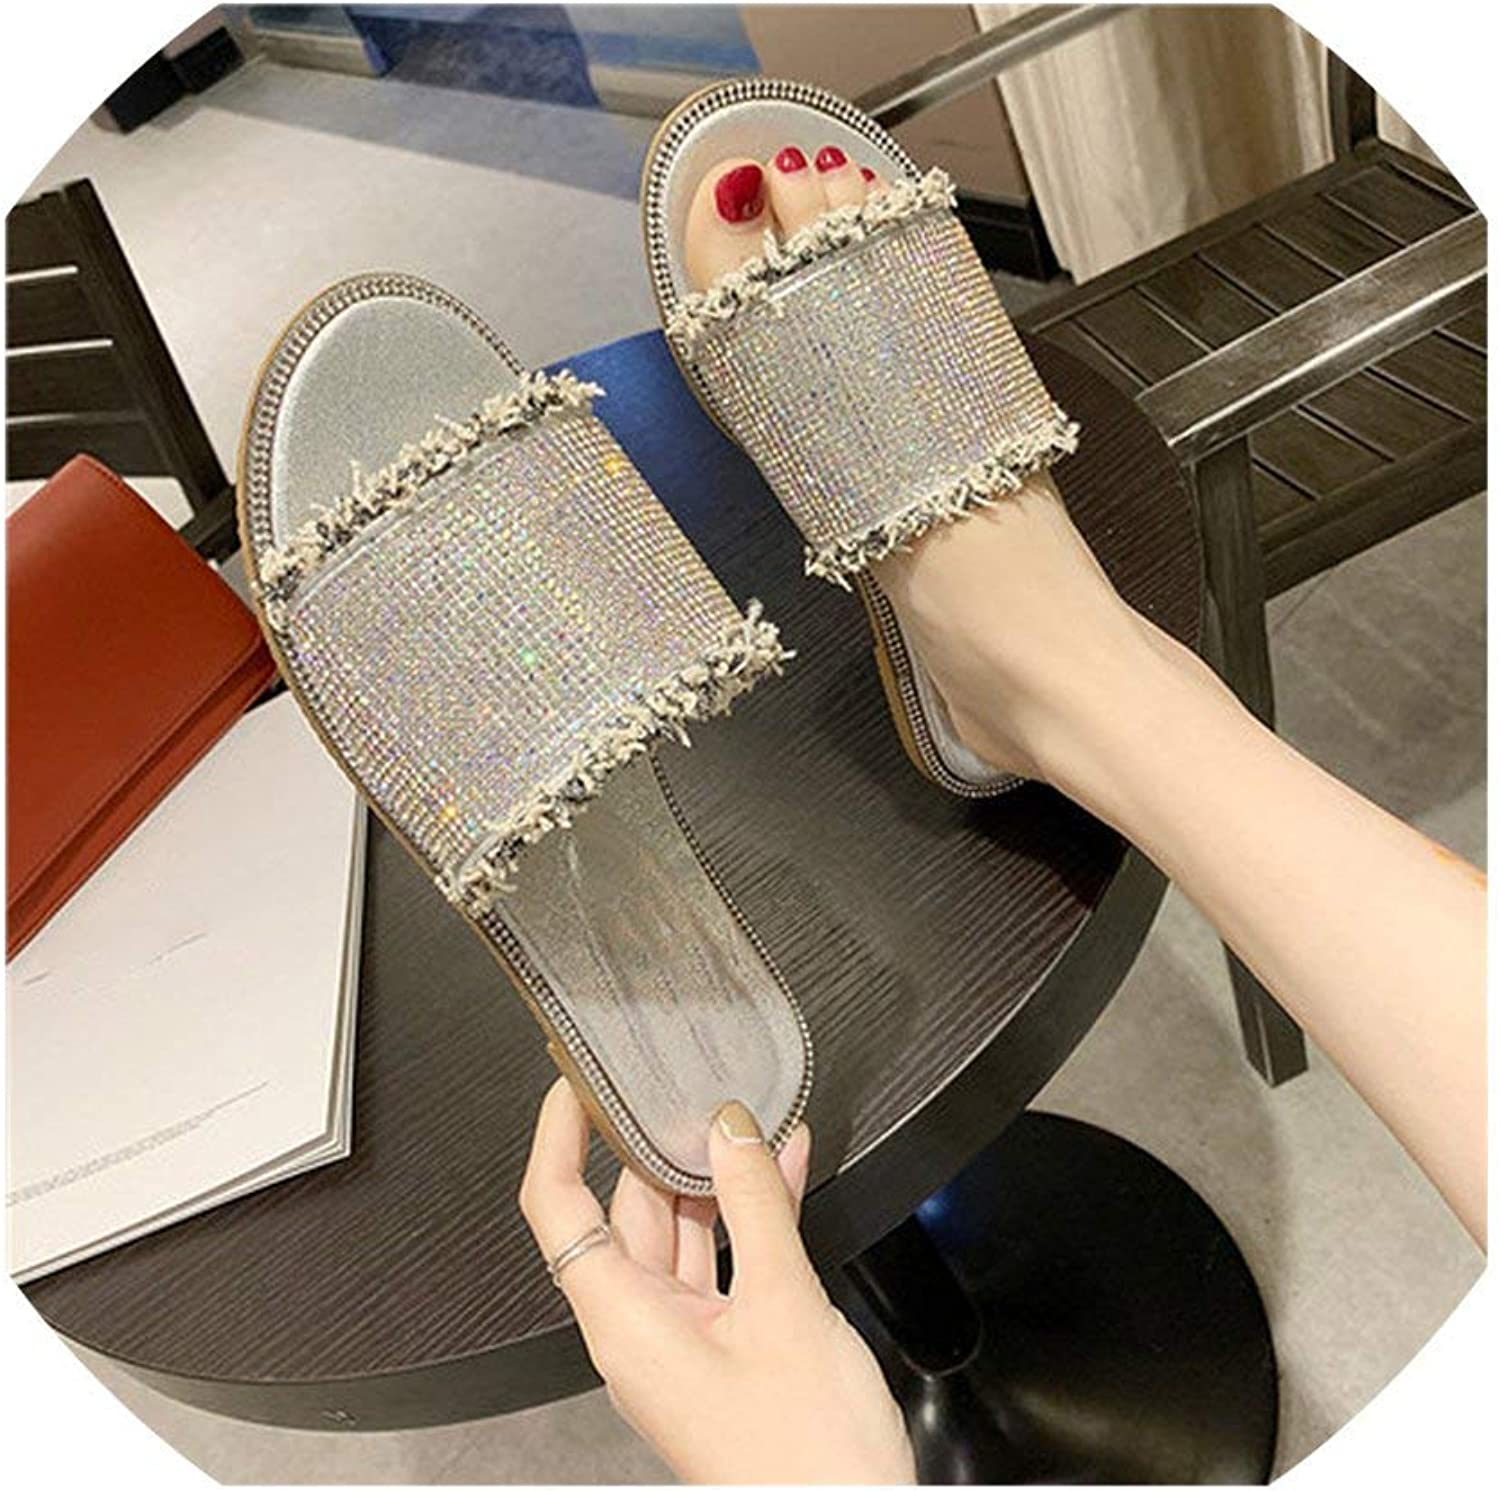 HuaHua-Store shoes Low Outdoor Women's Slippers Jelly Flip Flops Sexy Outside Soft Luxury Flat Sliders